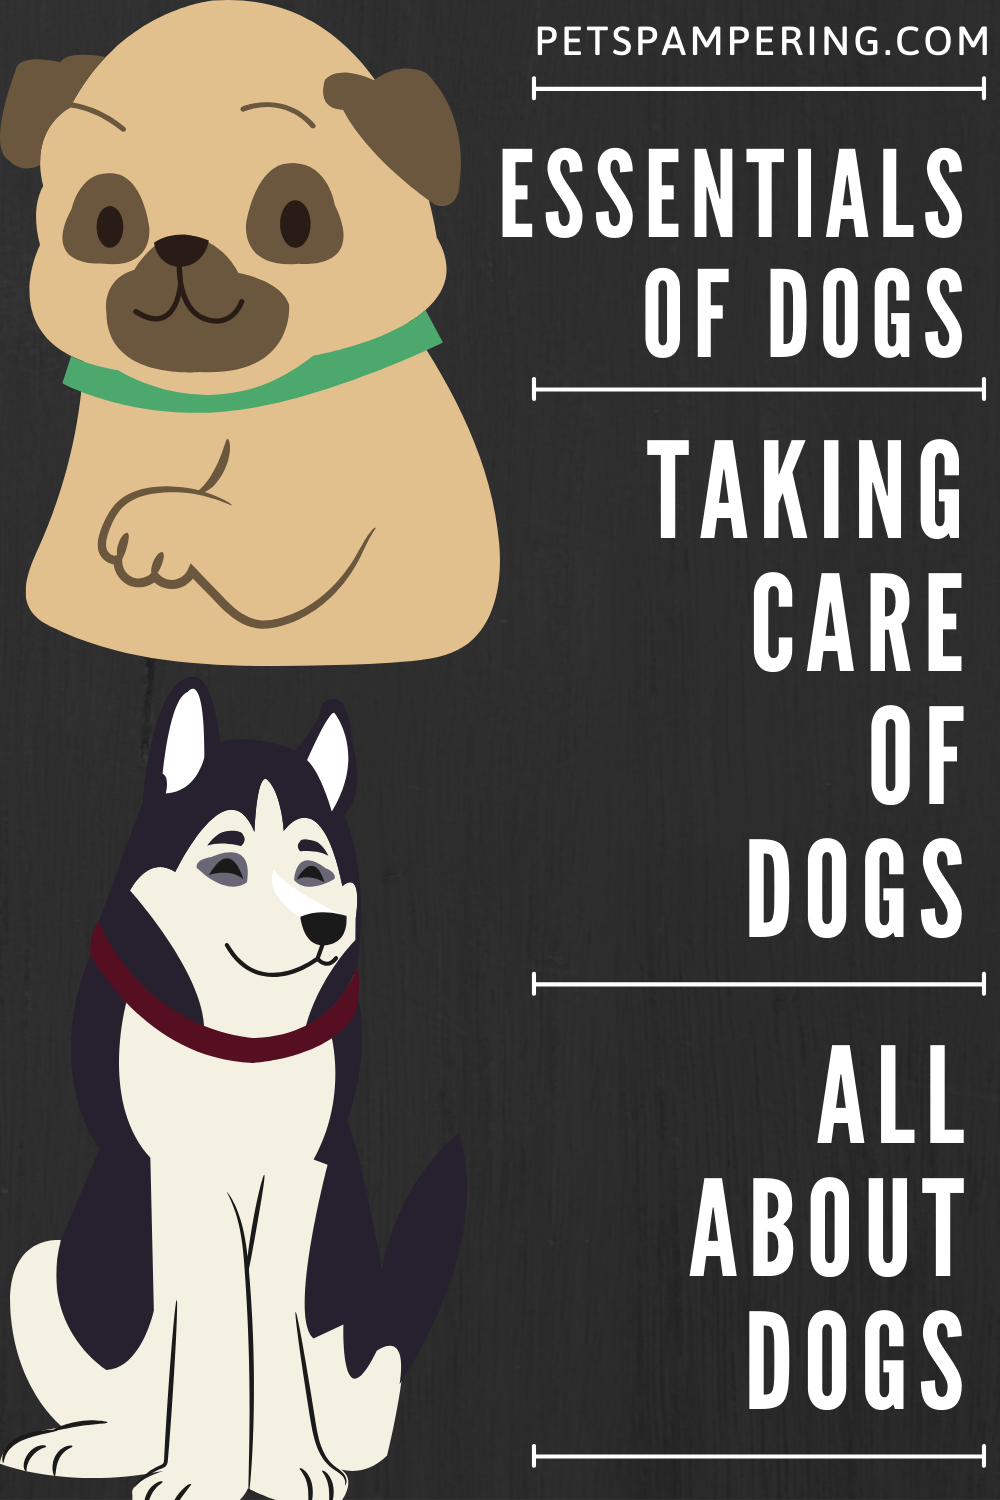 All about Dogs.  THINGS TO KNOW BEFORE HAVING A DOG. ESSENTIALS OF DOGS. TAKING CARE OF DOGS  #dog #dogsofinstagram #dogs #dogstagram #doglover #dogoftheday #doglife #doglovers #doggy #dogsofinsta #dogsofig #doggo #doglove